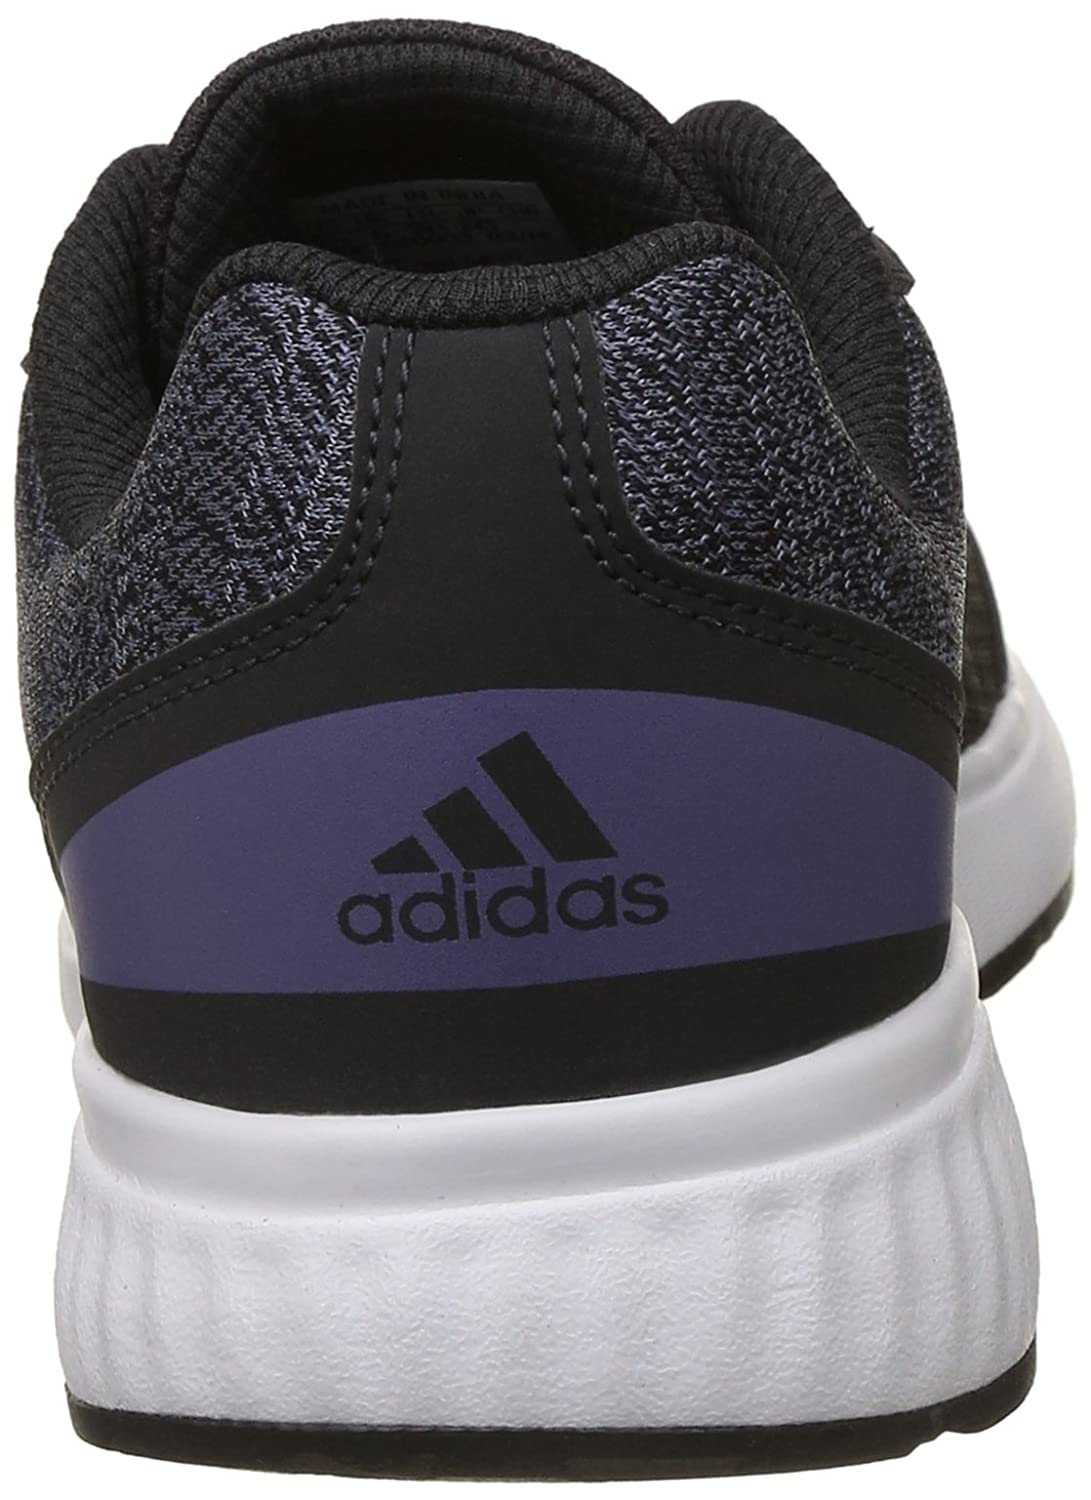 5e8da347b03 Adidas Men s Adi Pacer 4 M Running Shoes  Buy Online at Low Prices in India  - Amazon.in